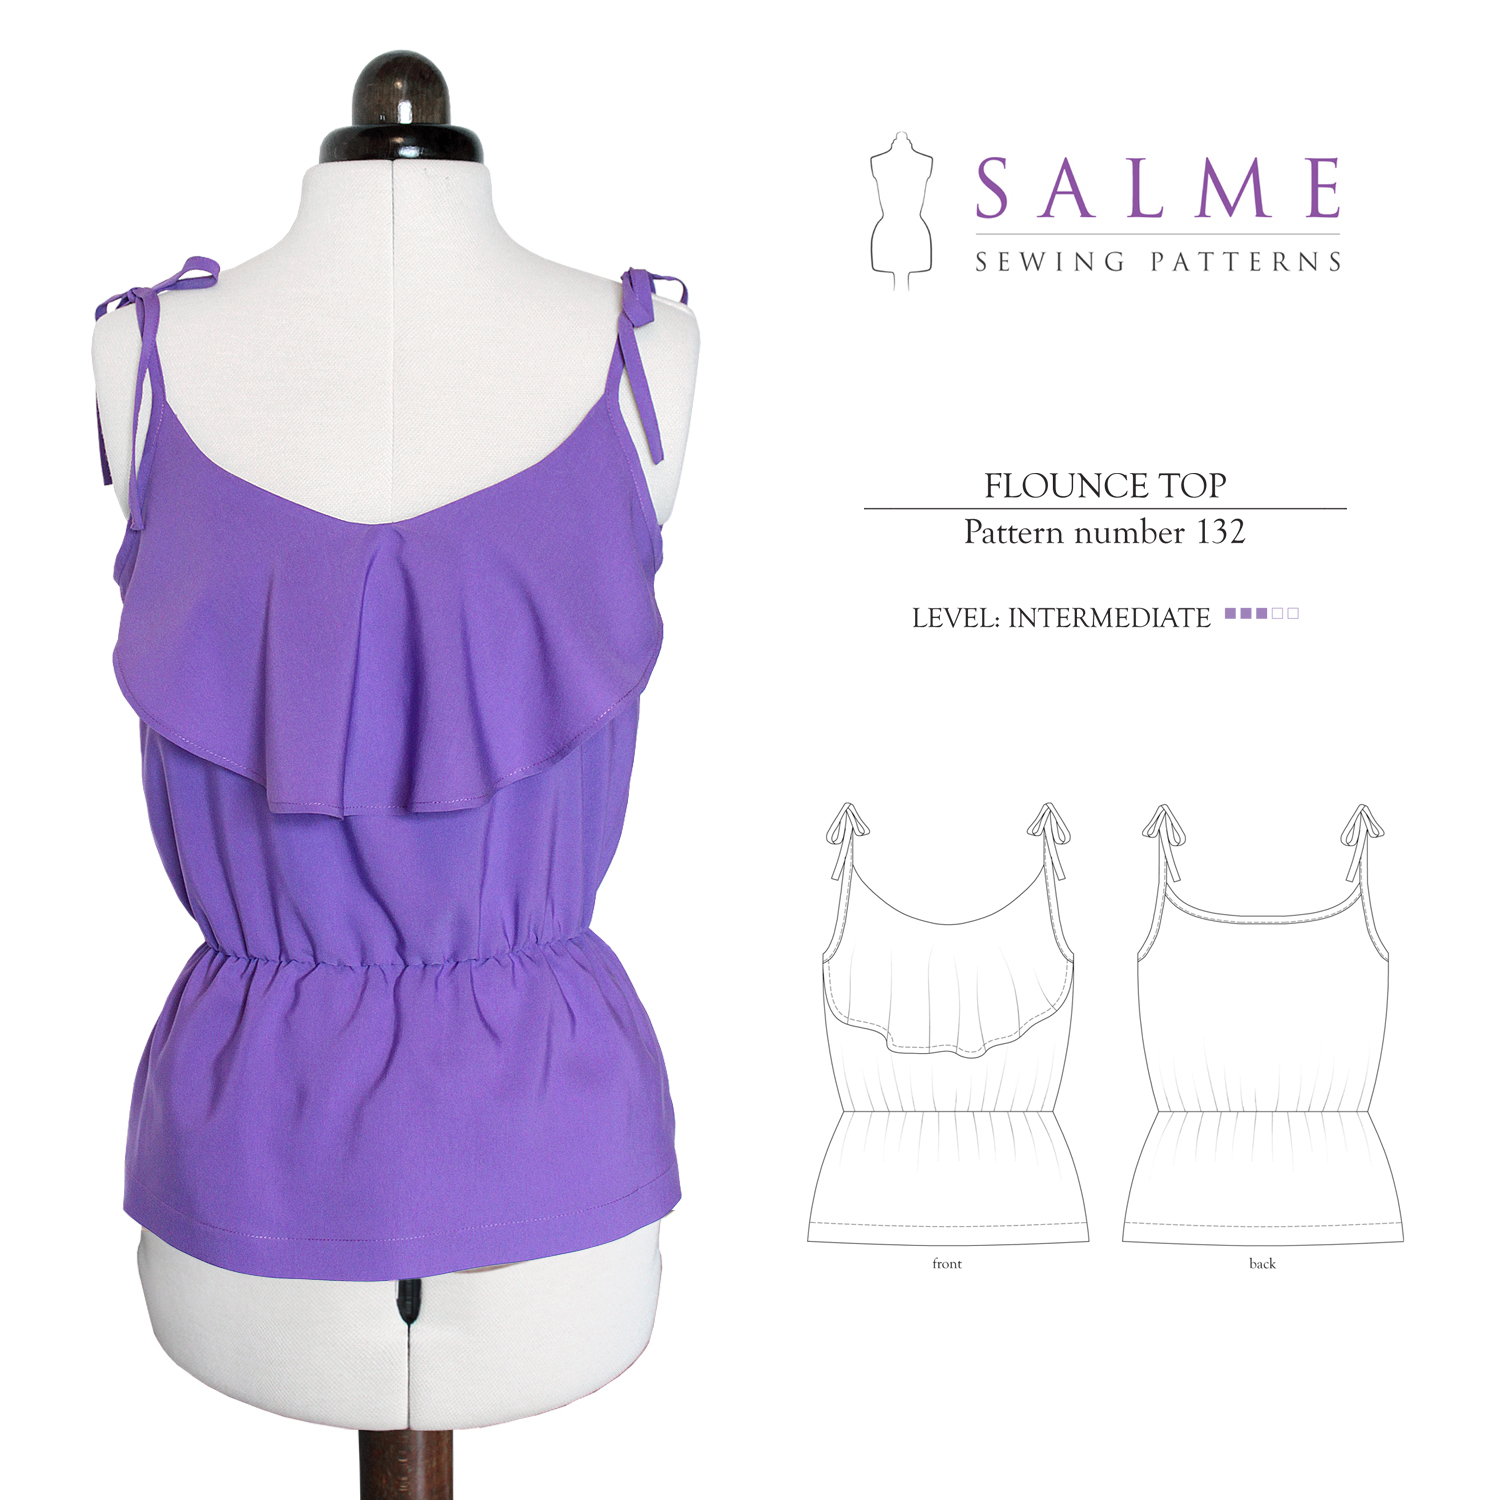 Salme sewing patterns 132 flounce top downloadable pattern prevnext jeuxipadfo Image collections